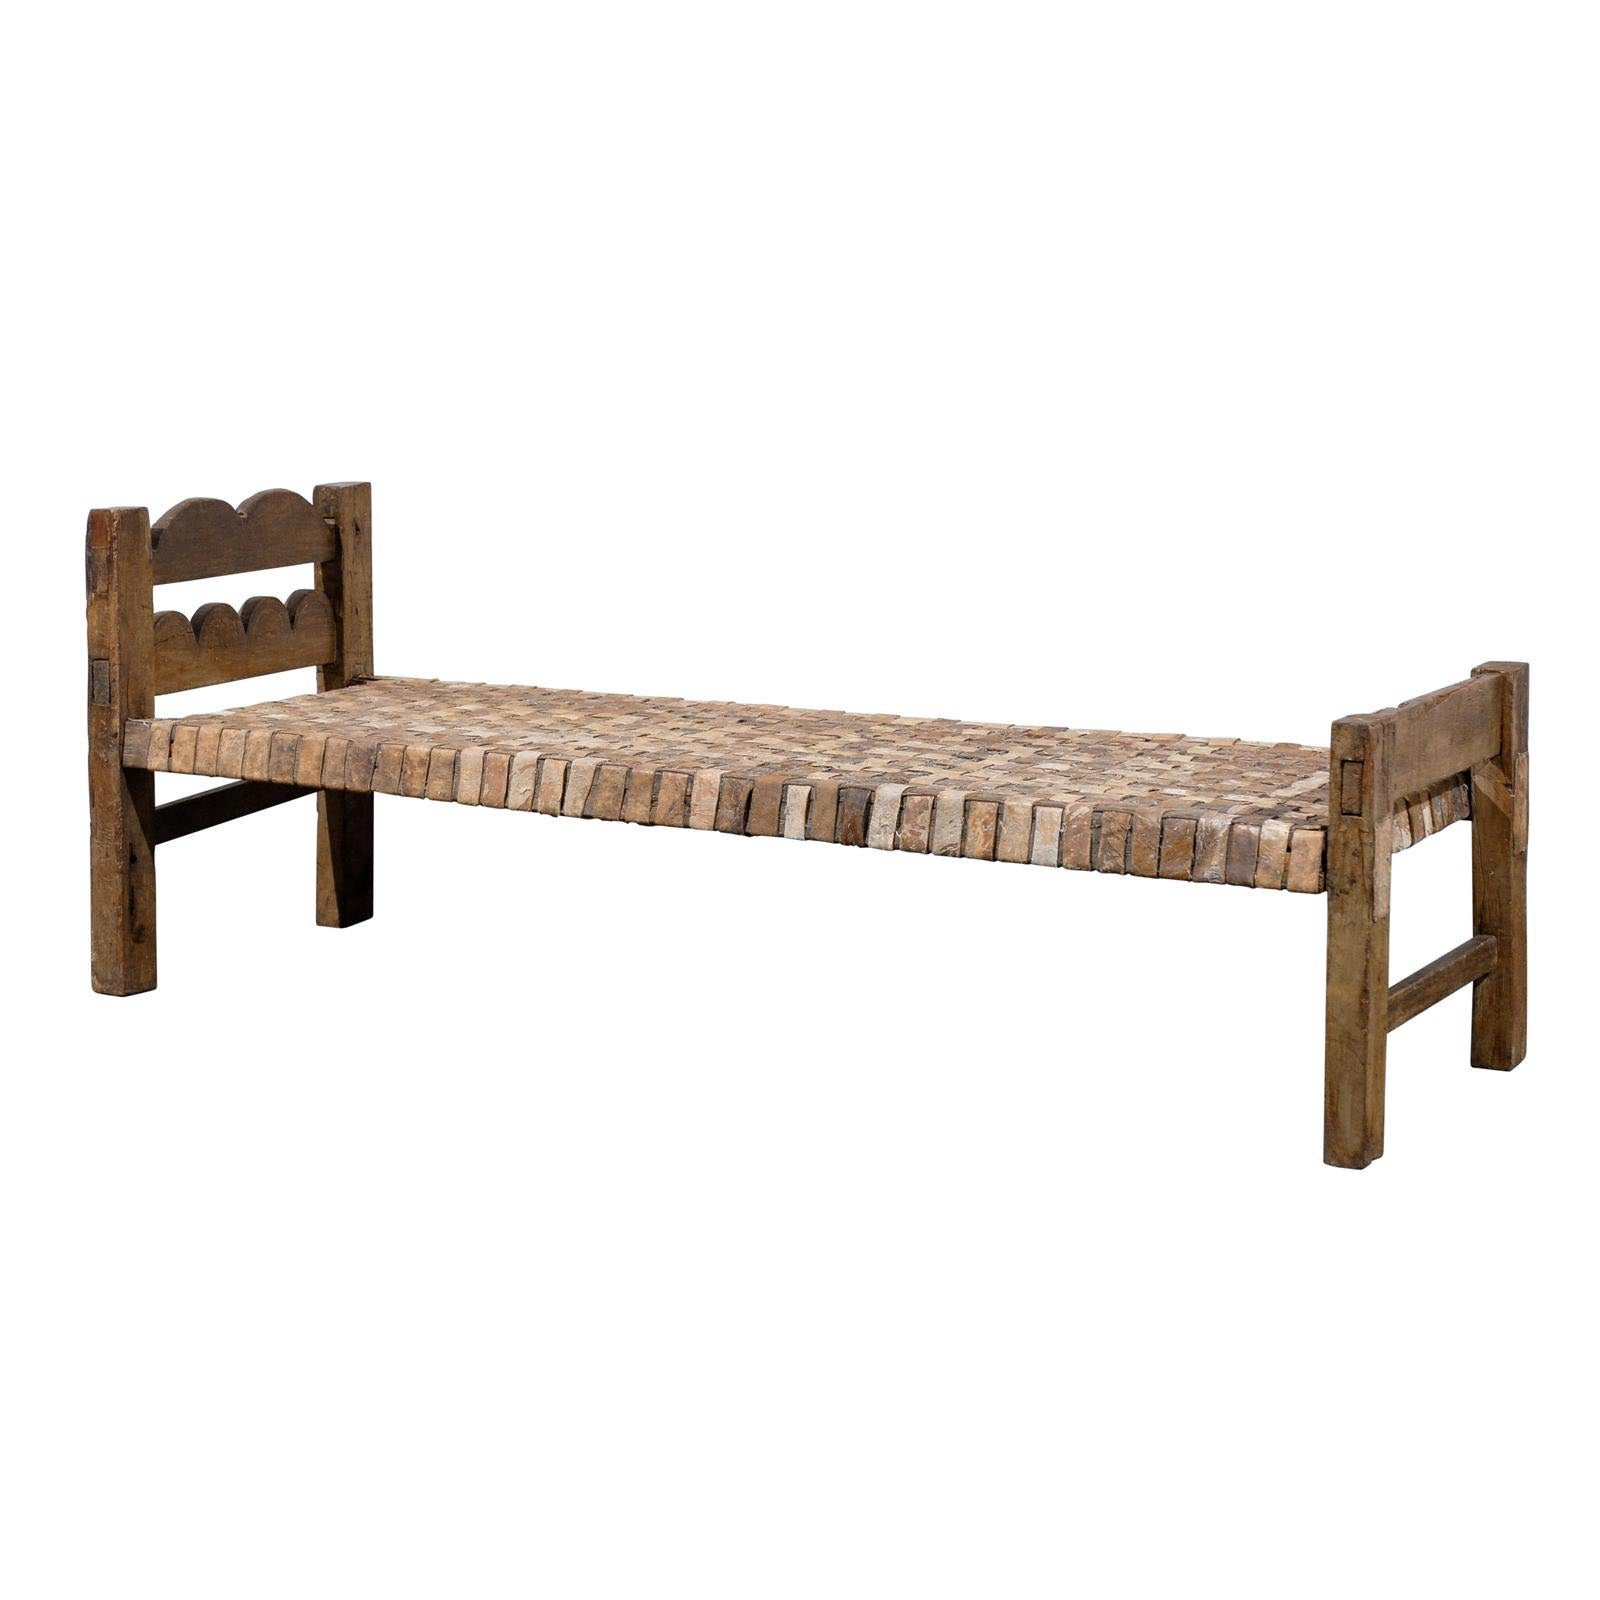 Brazilian Wooden Bench or Daybed with Cow Hide Seat